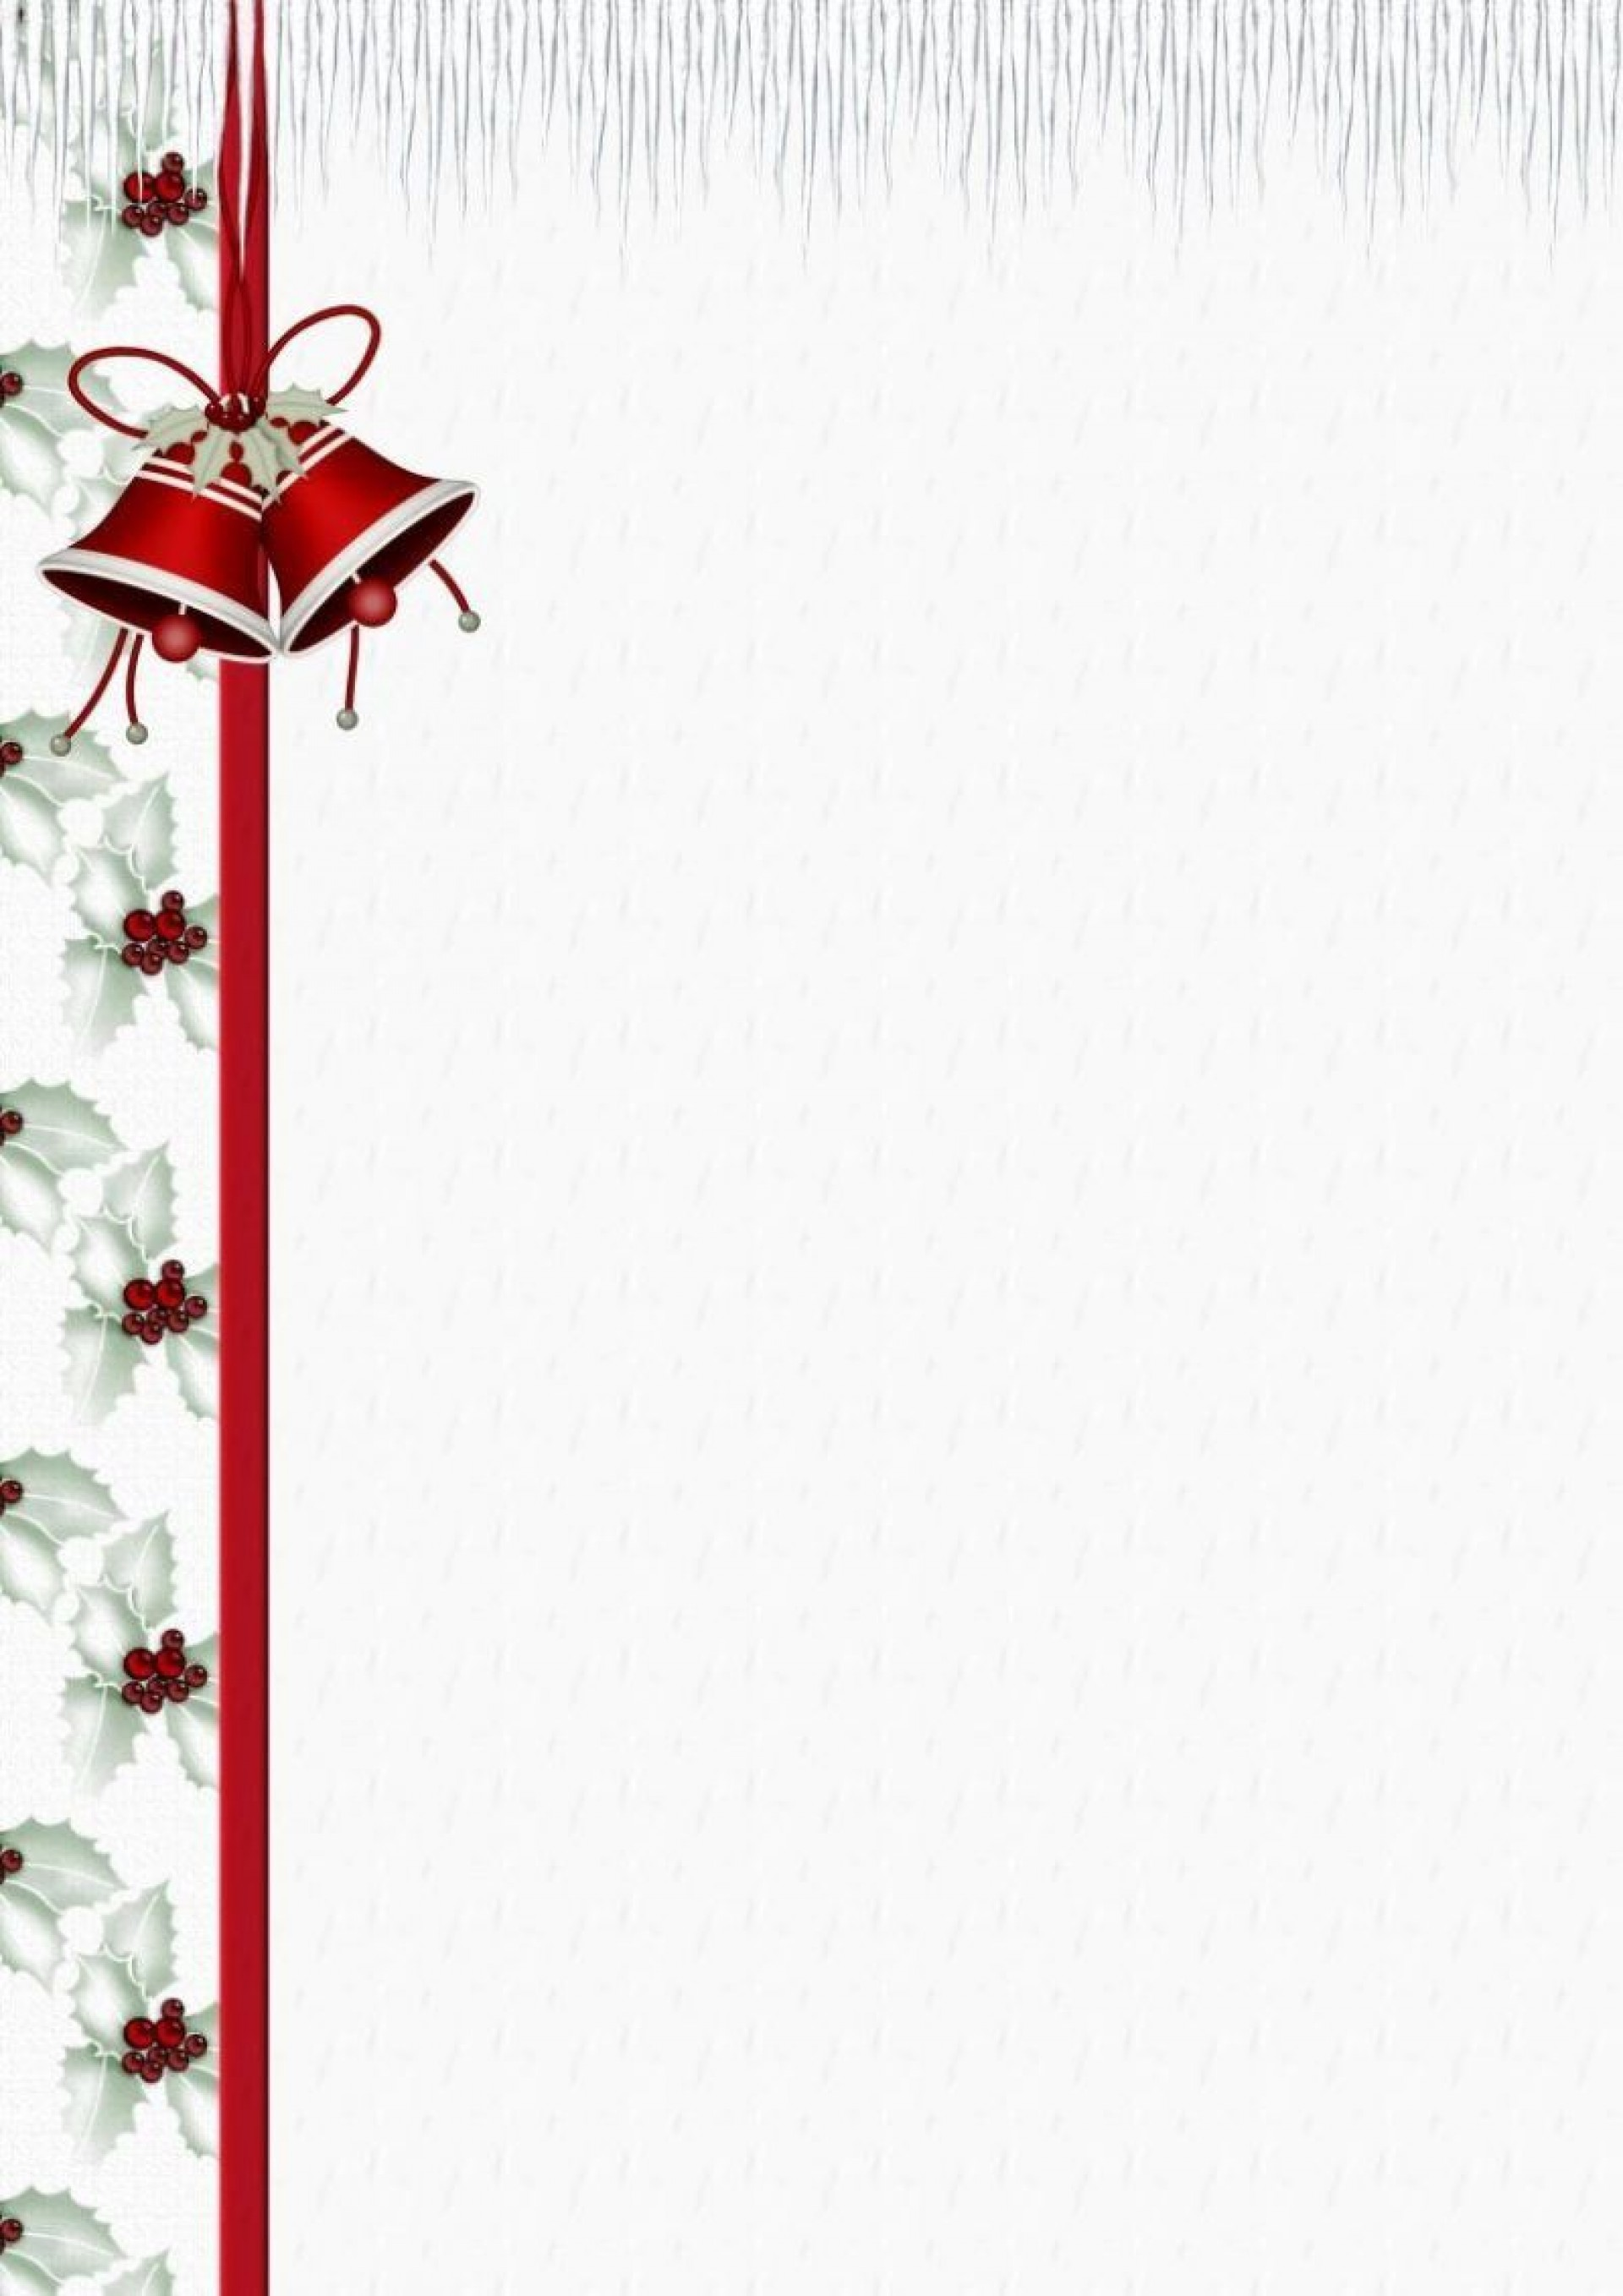 009 Formidable Christma Stationery Template Word Free Concept  Religiou For Downloadable1920